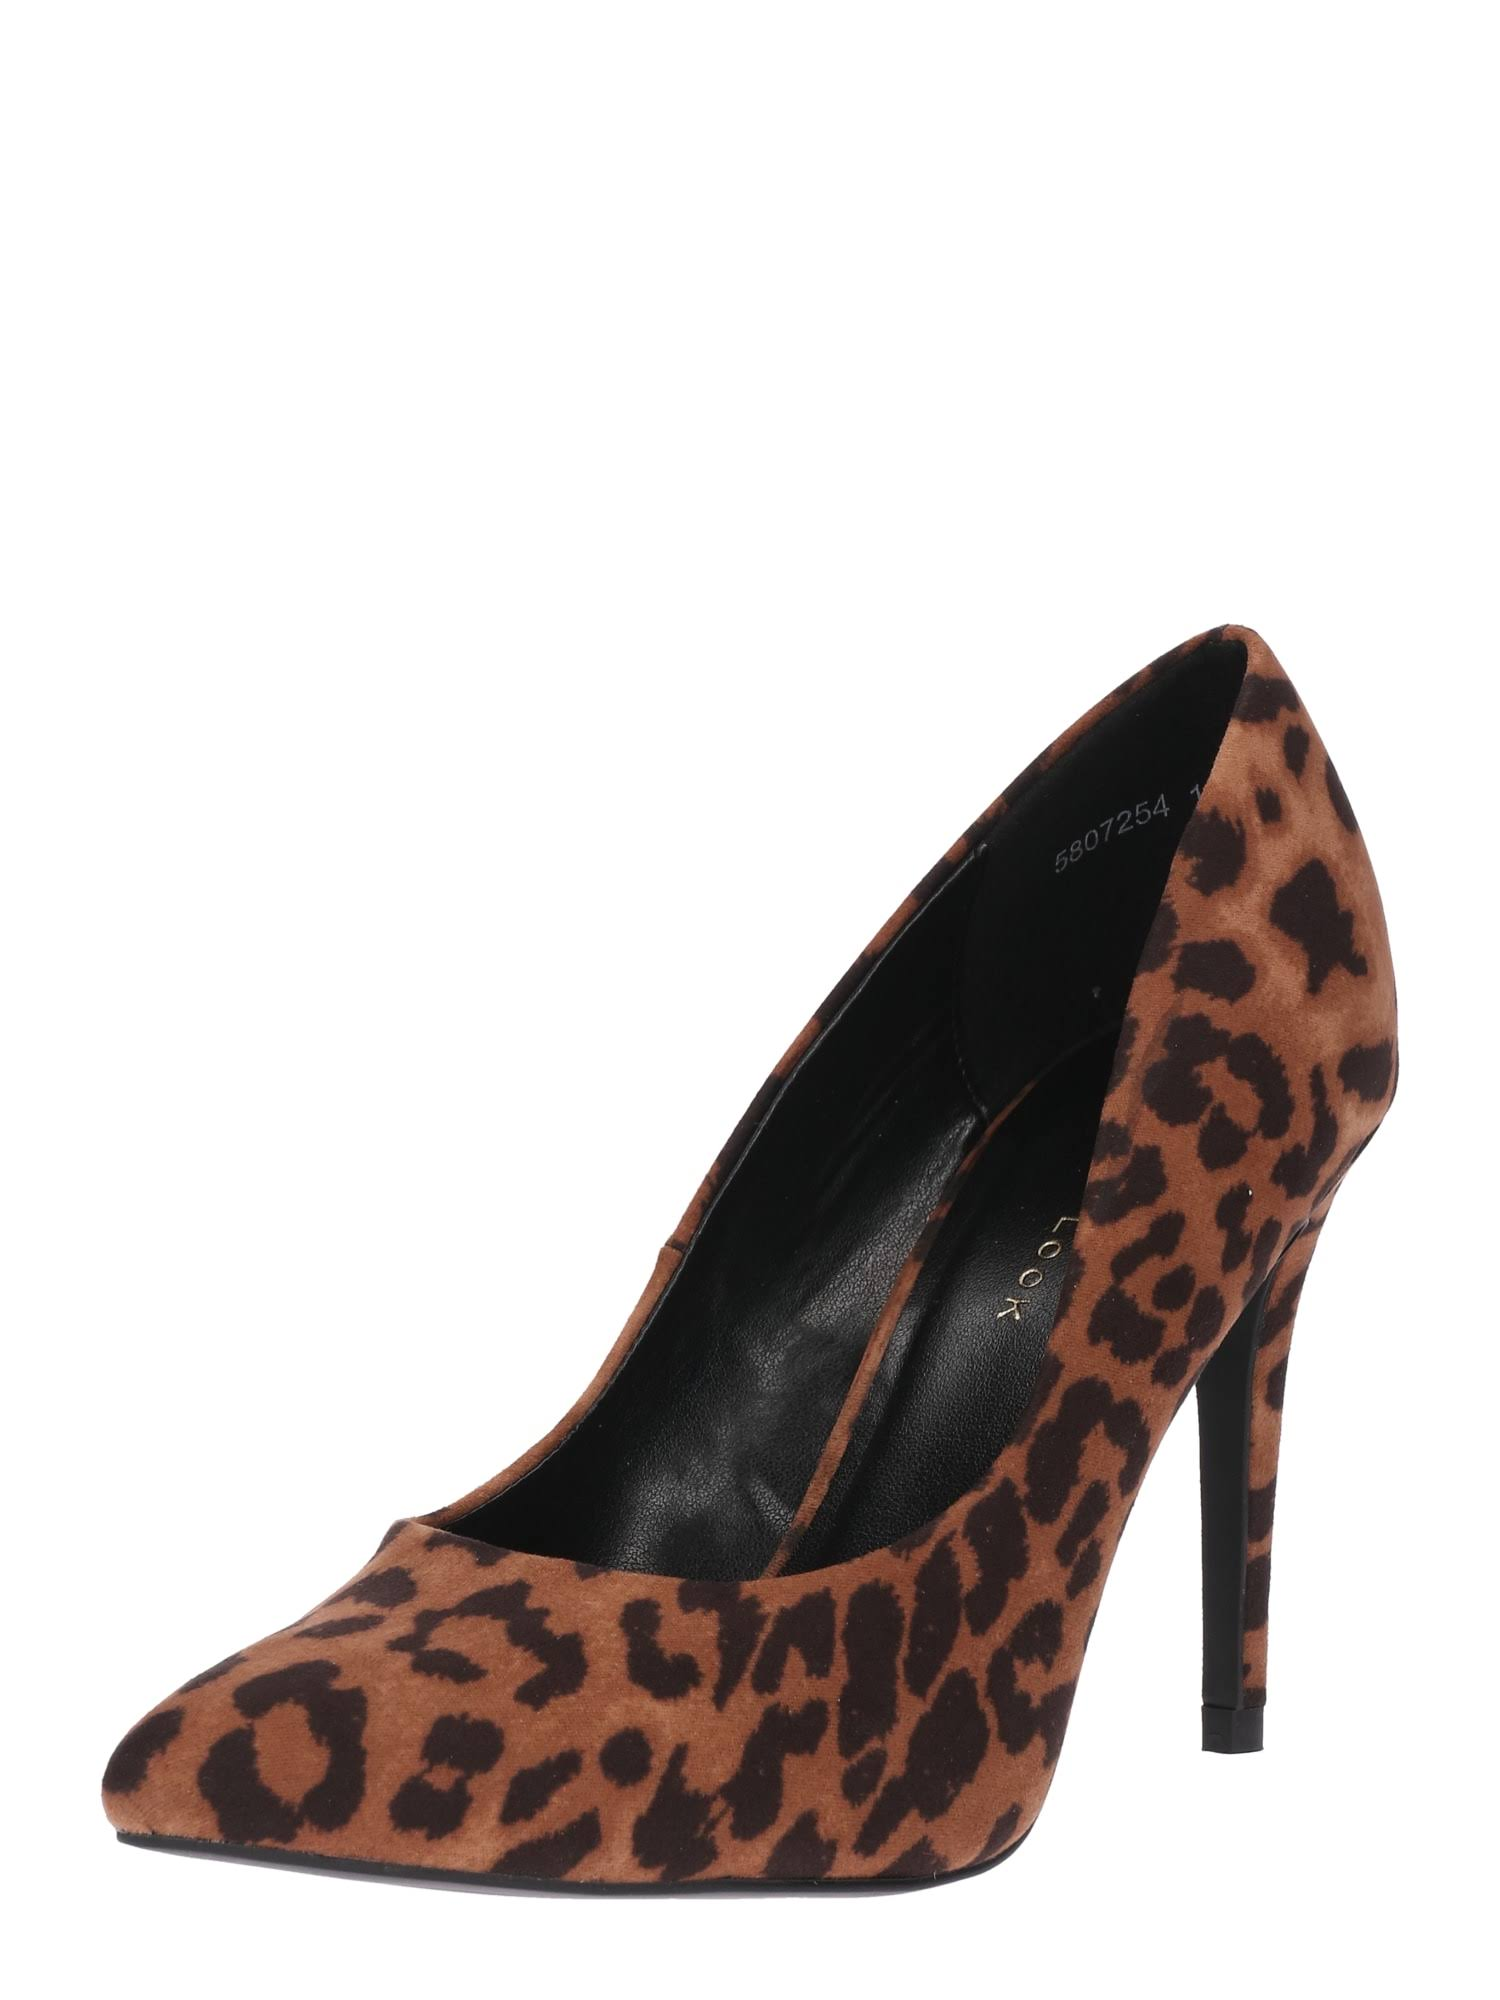 Brown Print New With Leopard LookPump cAj5LqR34